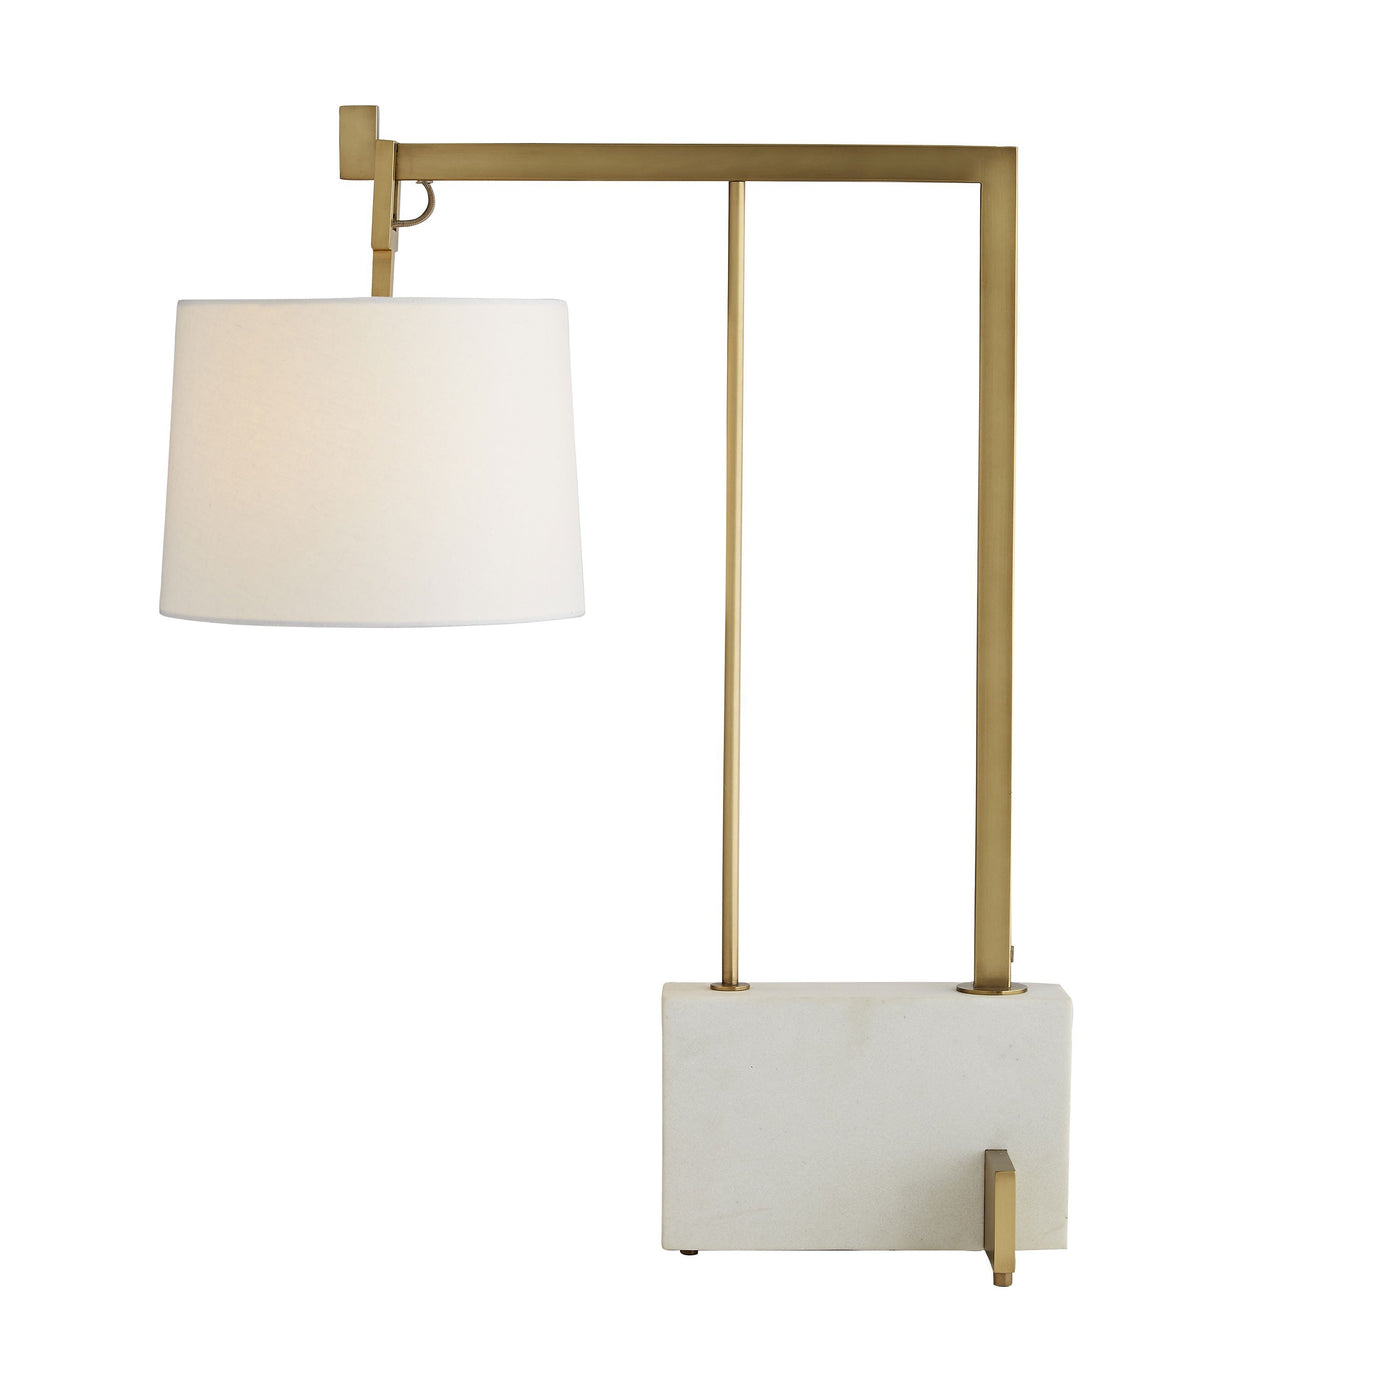 arteriors piloti lamp antique brass angle illuminated